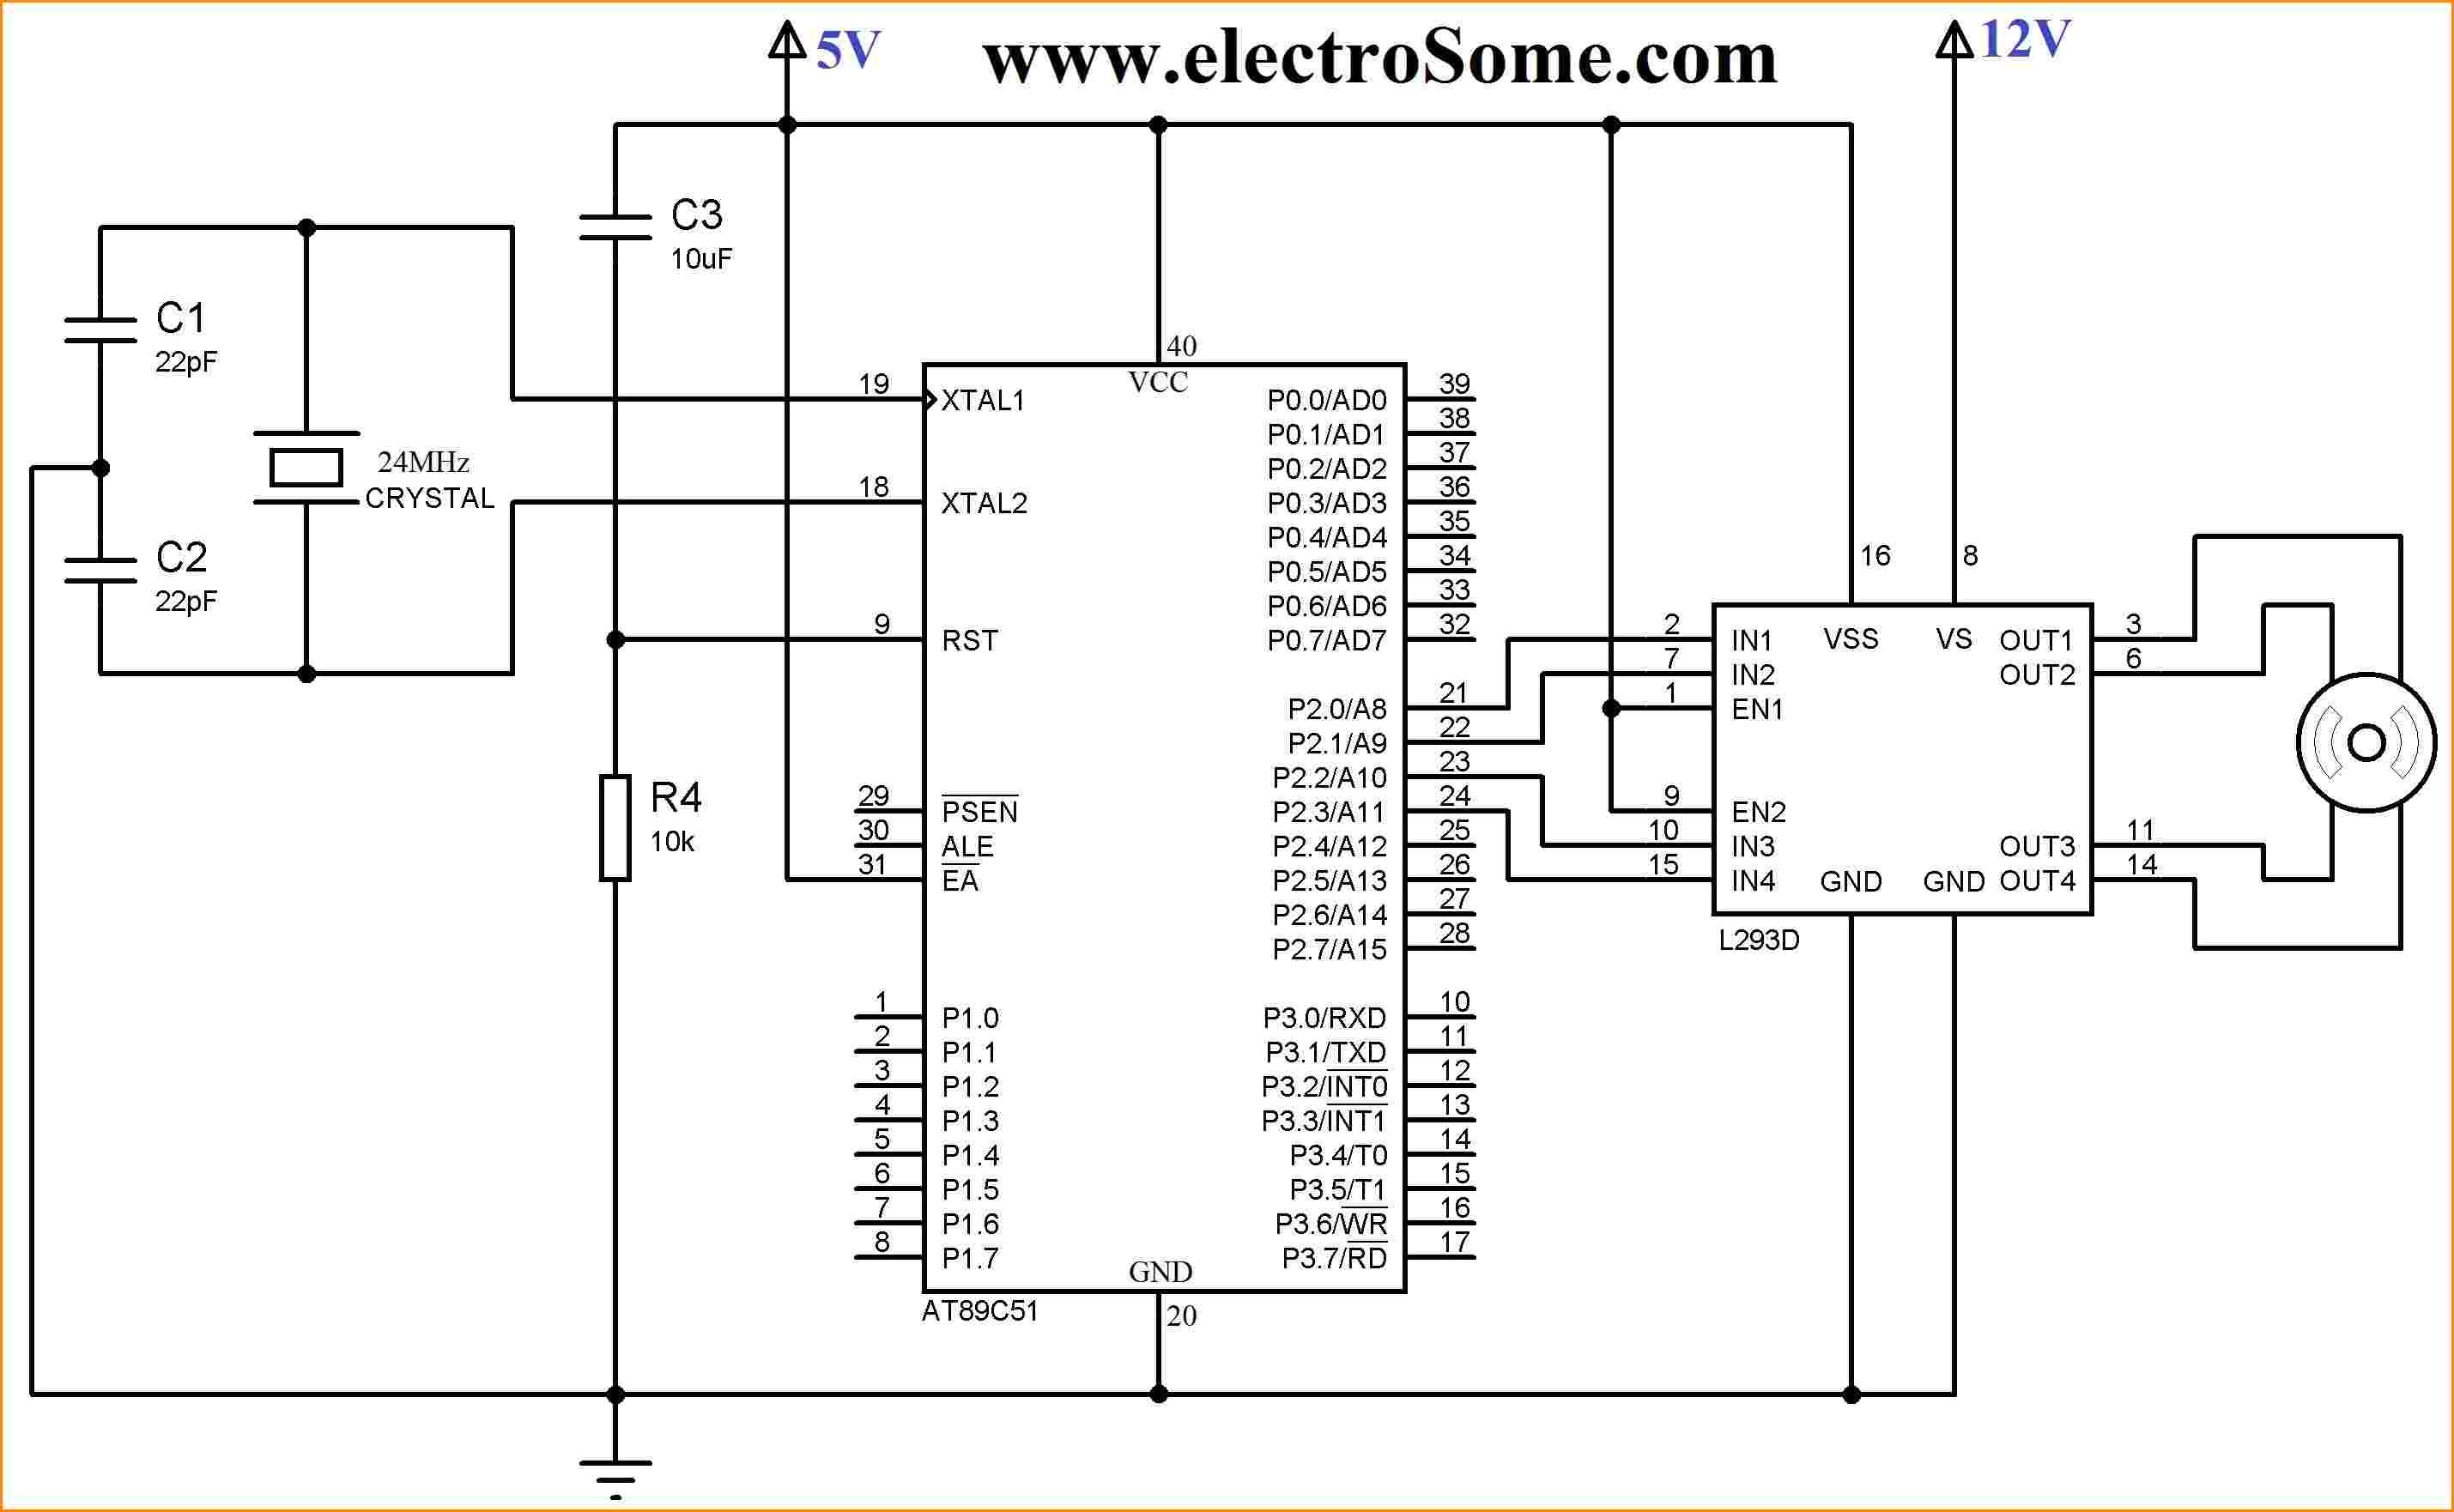 bunker hill security camera wiring diagram sample wiring. Black Bedroom Furniture Sets. Home Design Ideas